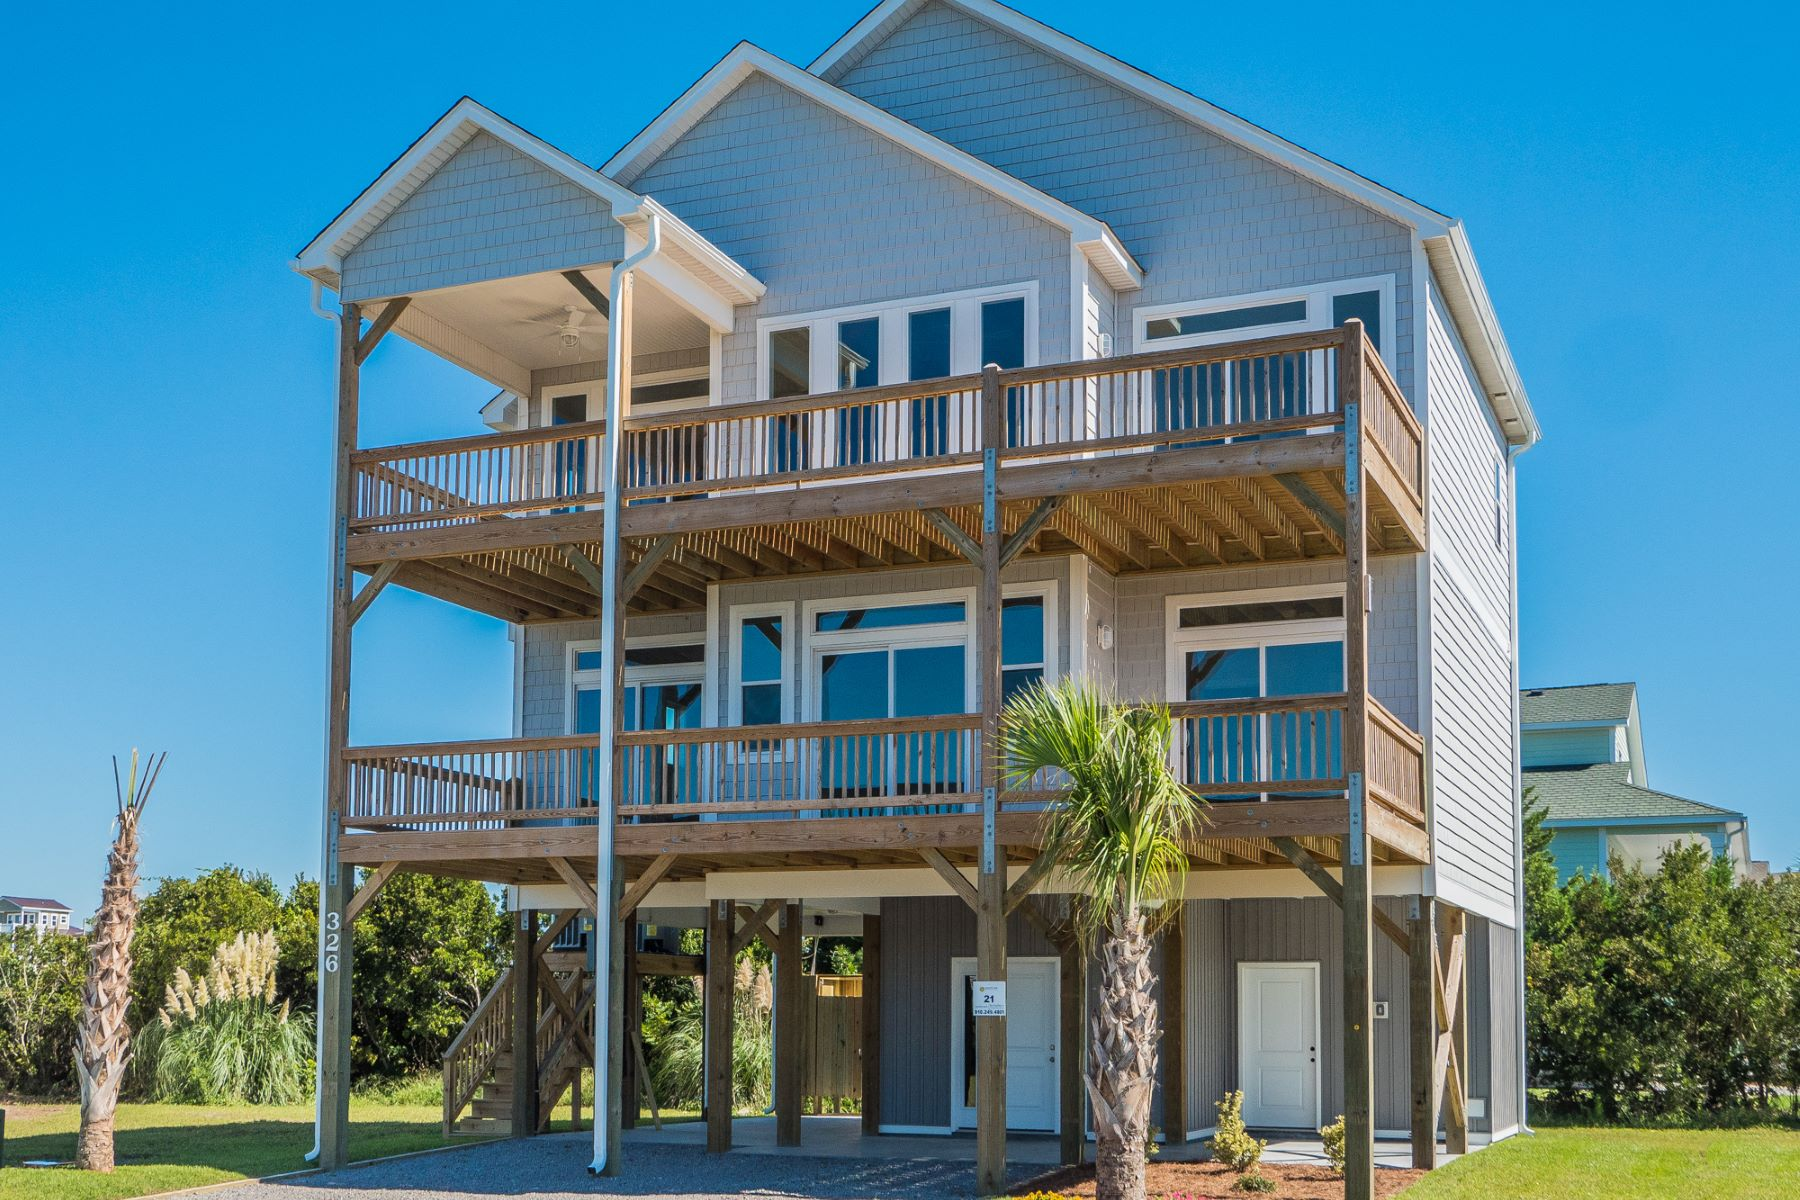 Single Family Home for Sale at Nautic Bay Island Home 316 Oceanaire Ln, Surf City, North Carolina, 28445 United States